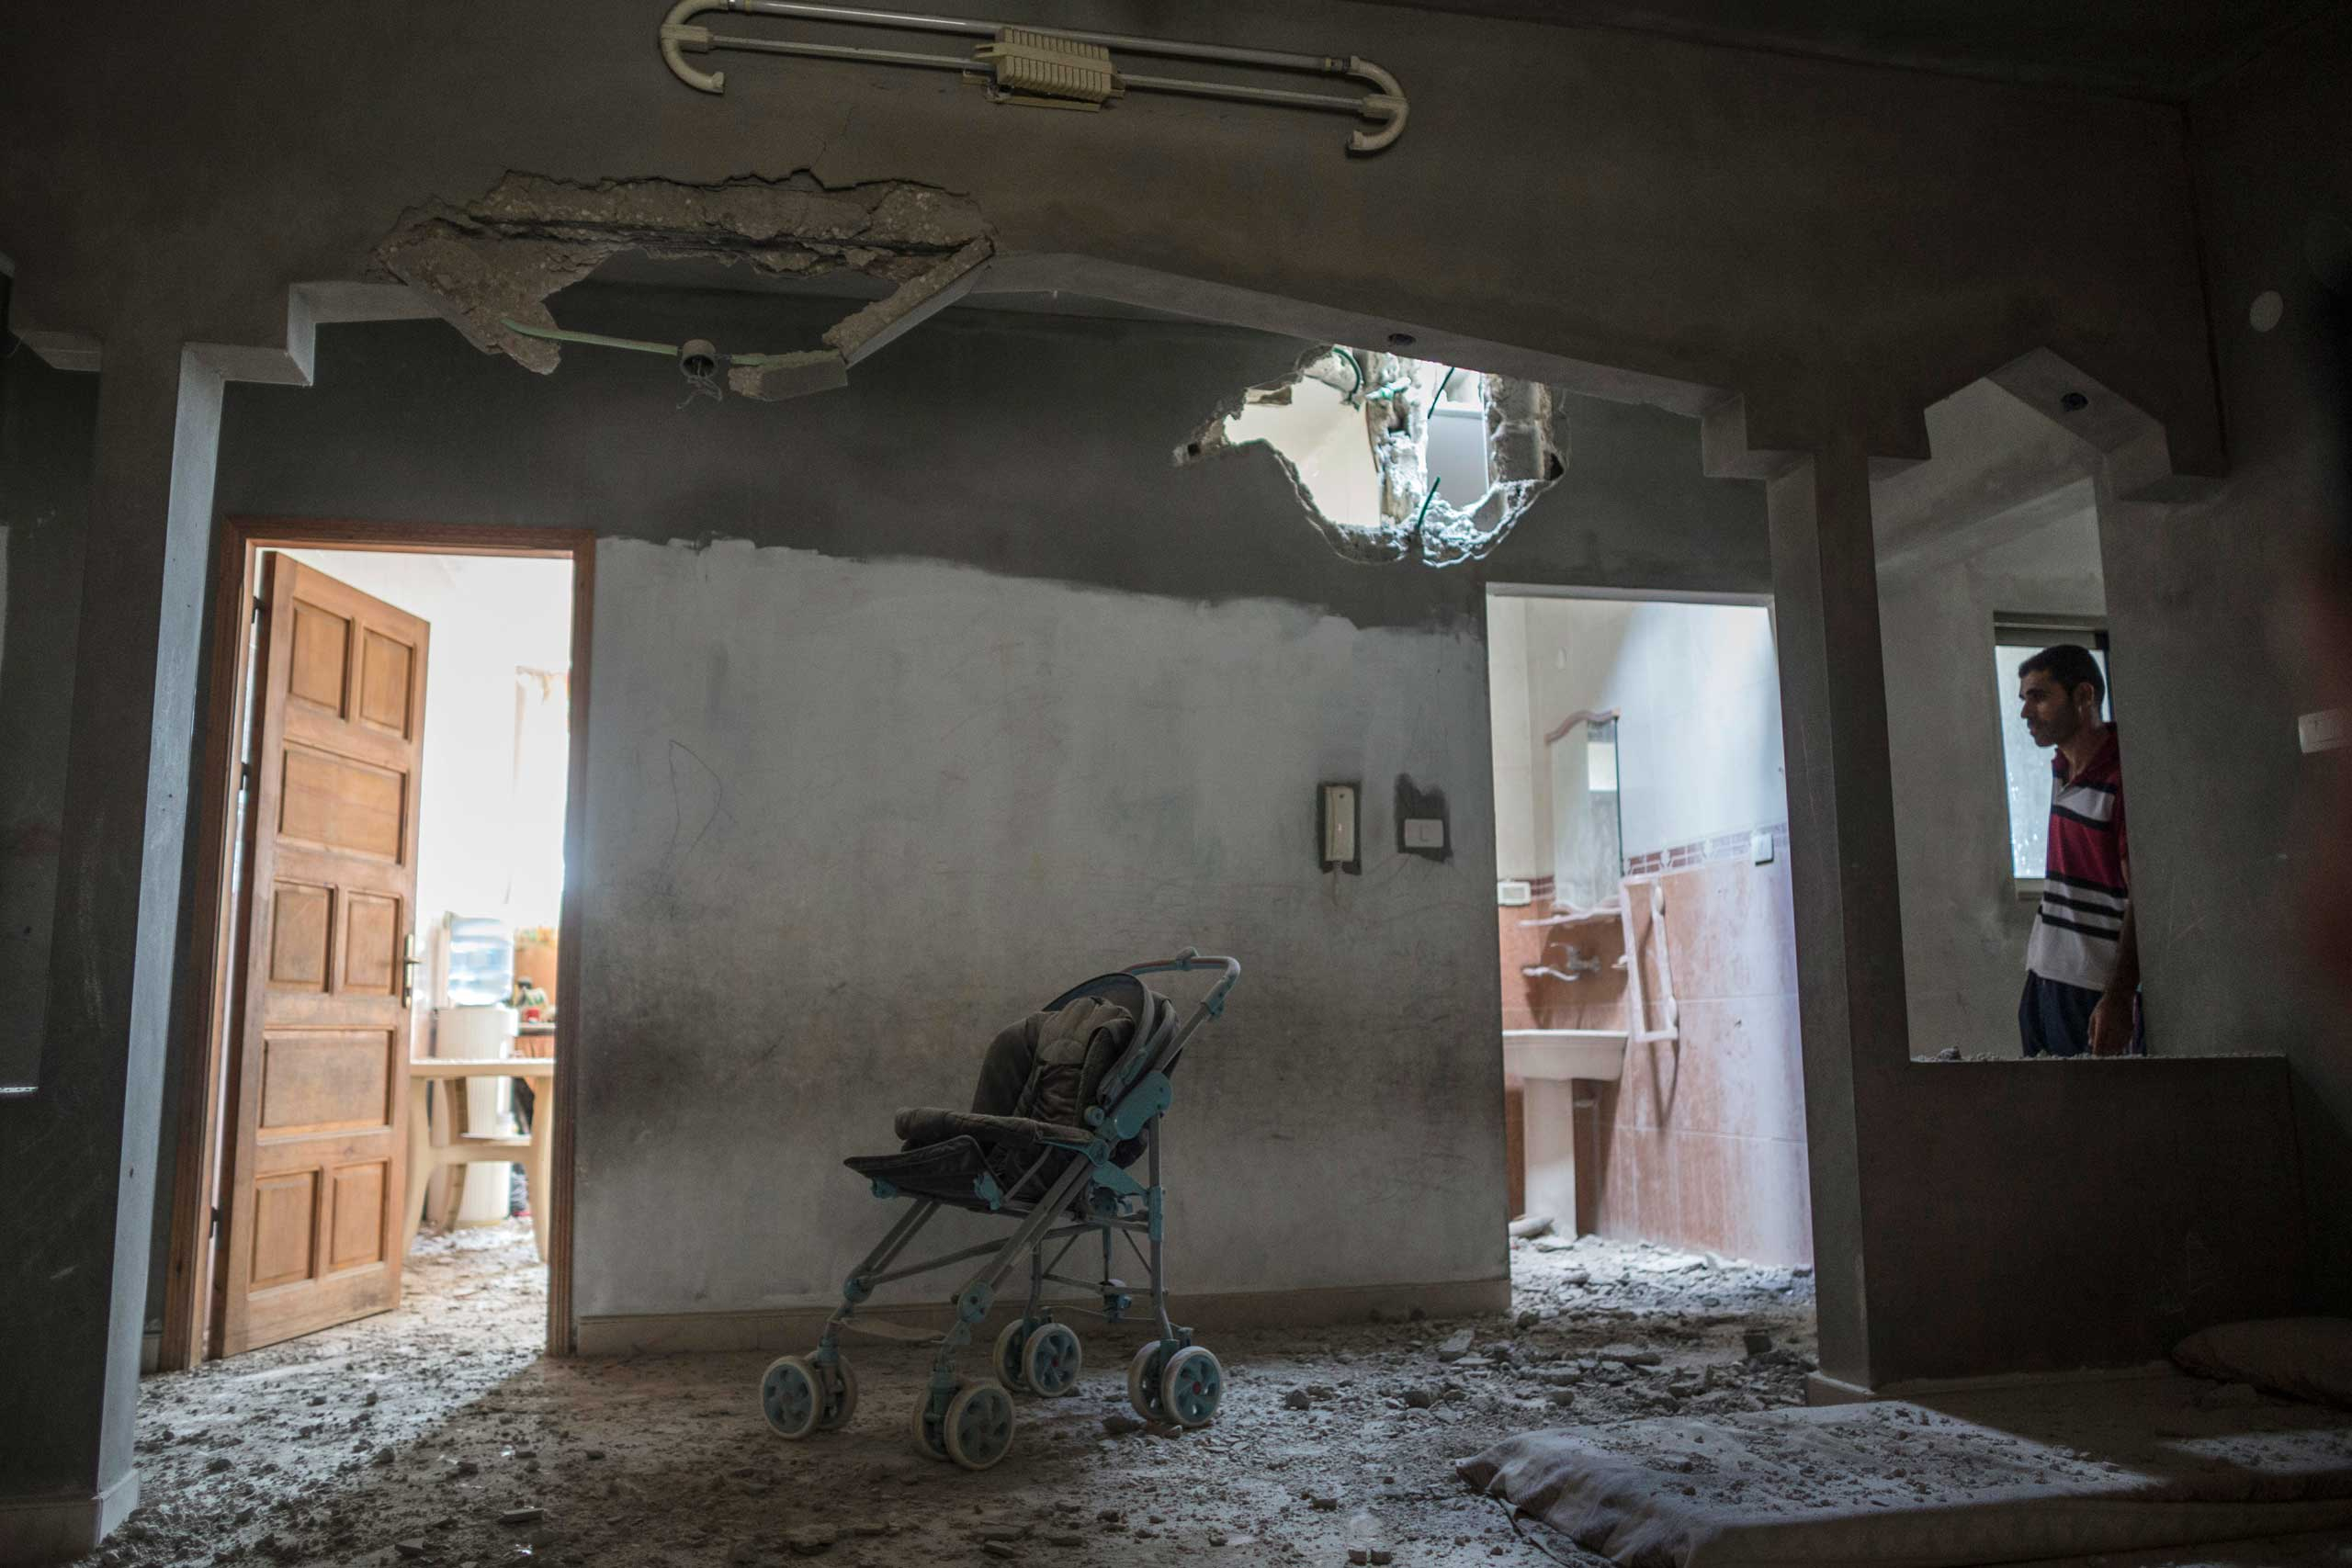 A relative looks at the spot in a Palestinian home where Reza, 1, was killed by shrapnel the night before, Gaza Strip, July 19, 2014.